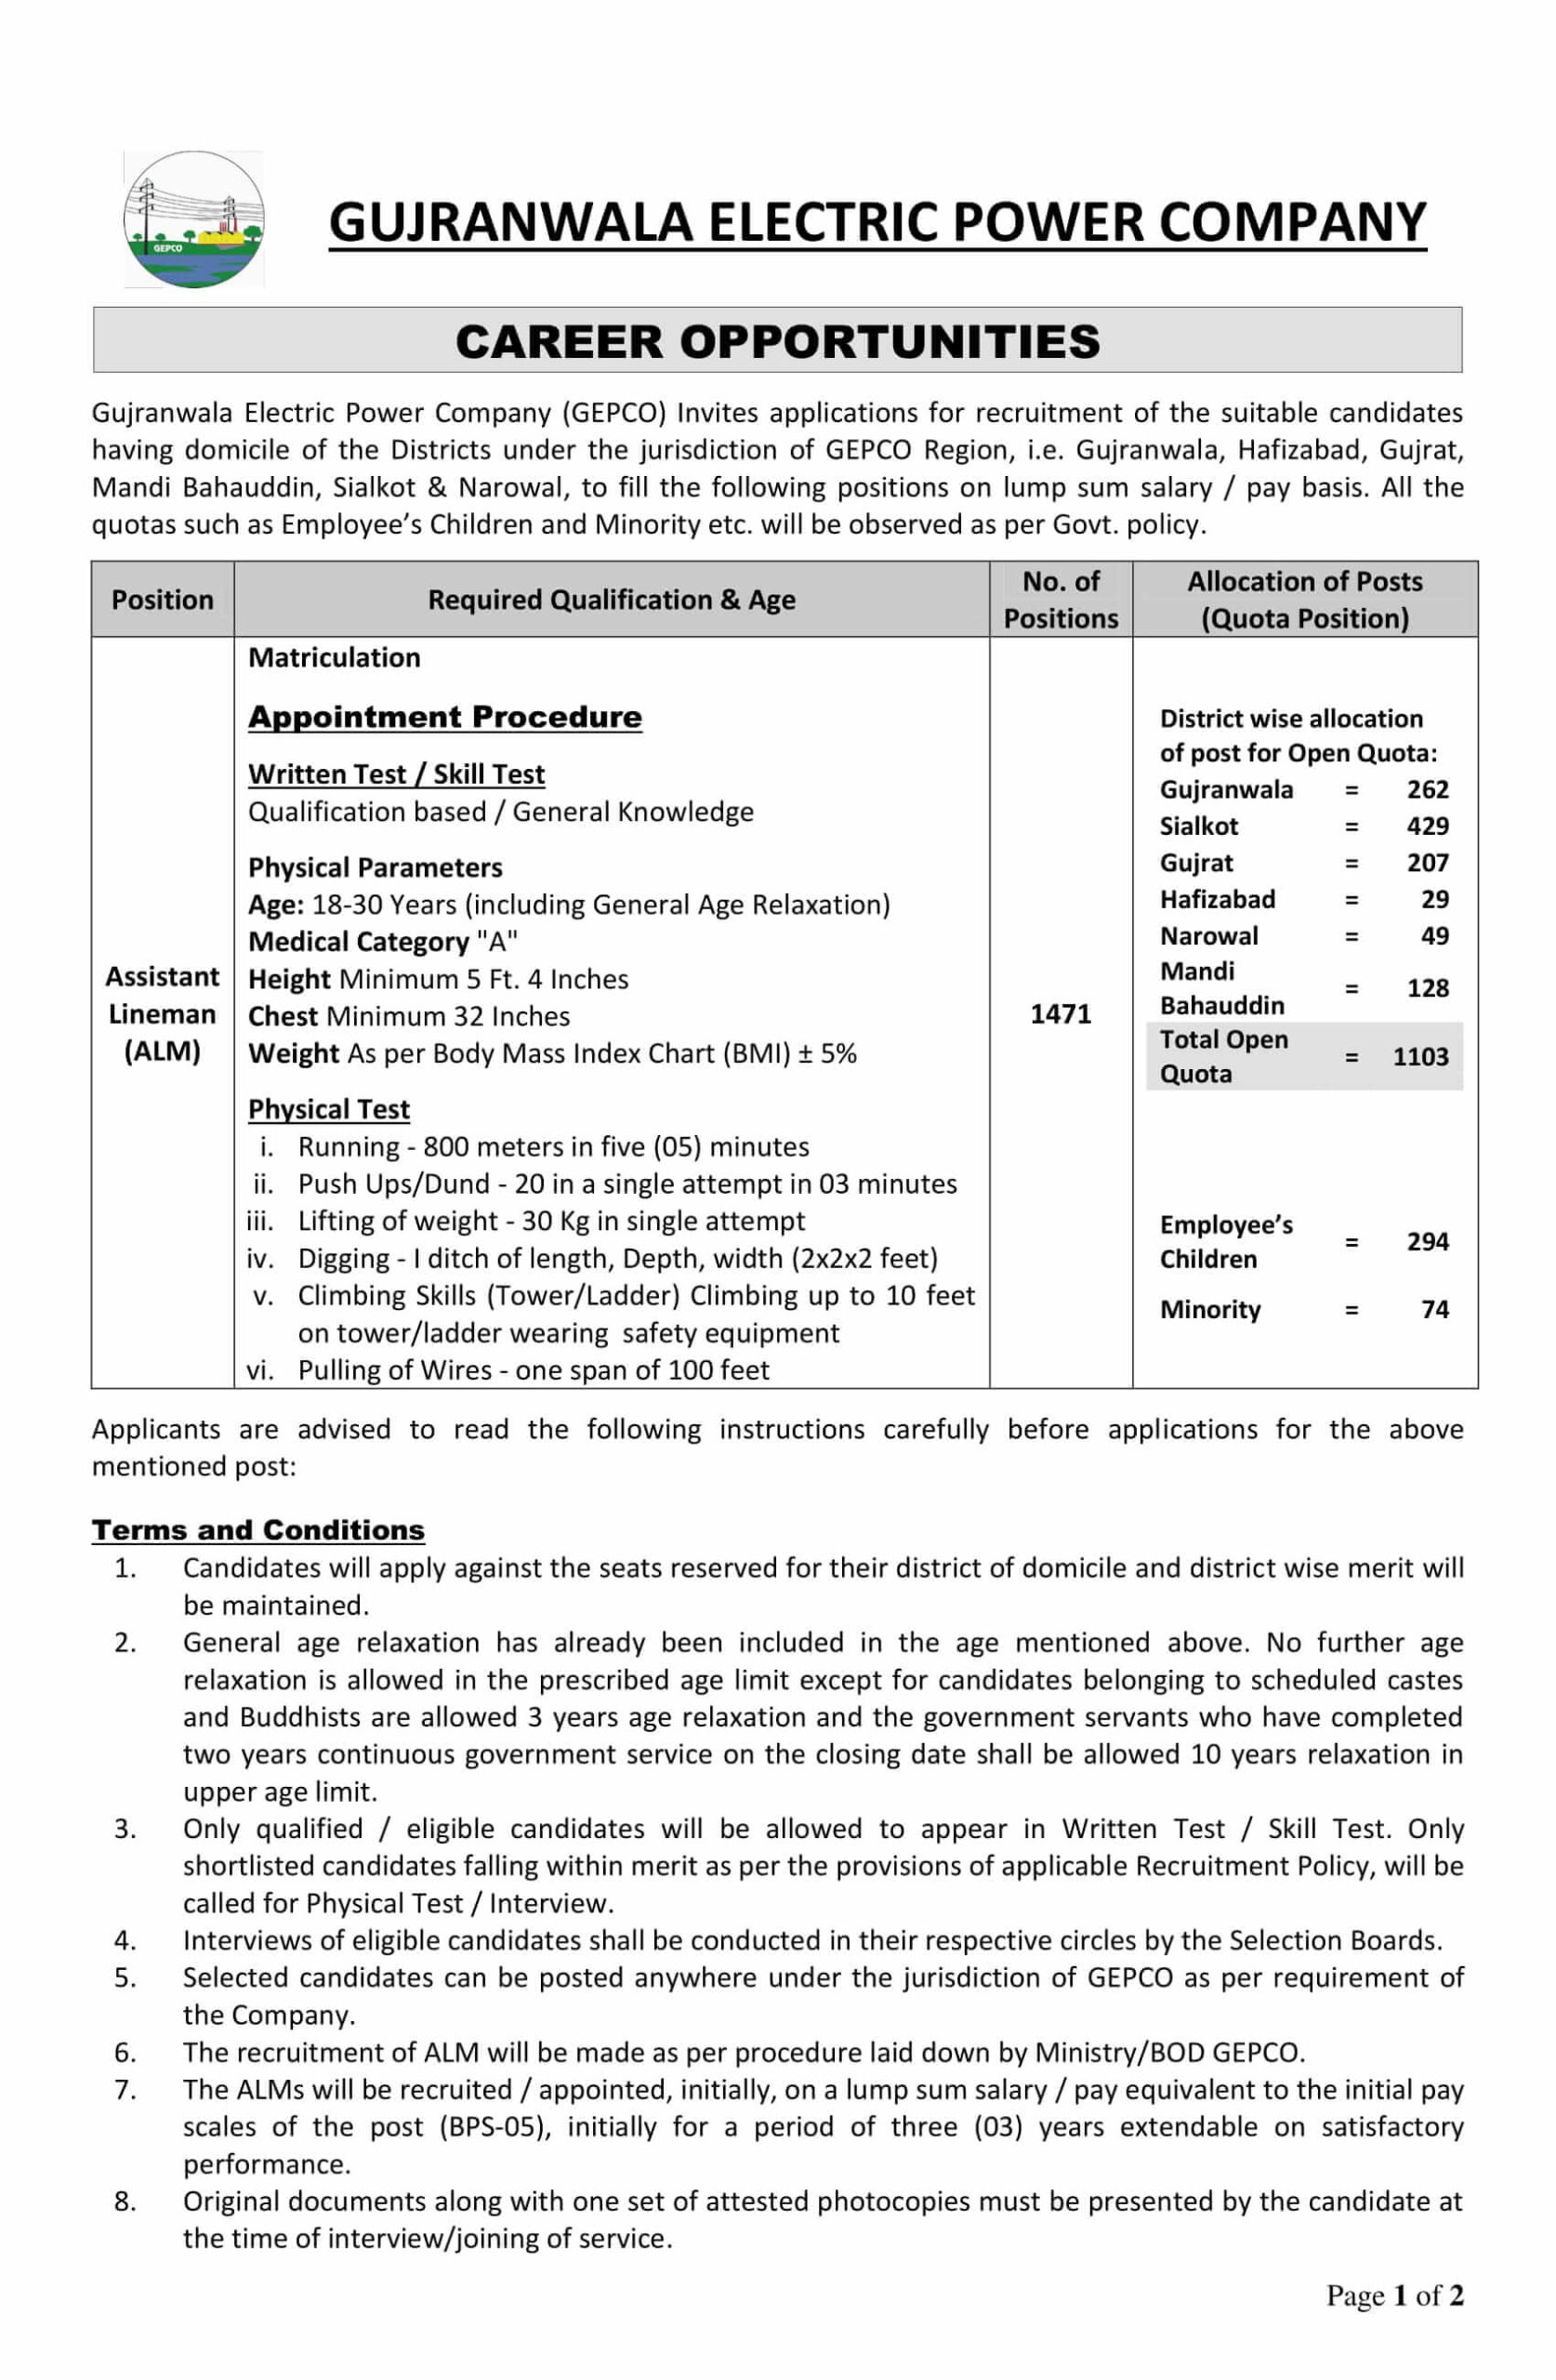 GEPCO ALM Jobs NTS Test Roll No Slip 2021